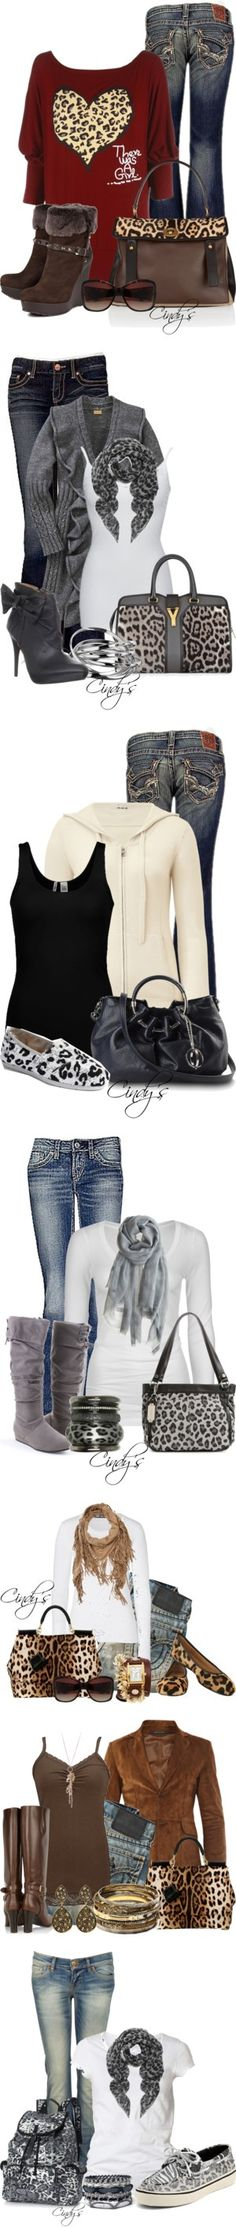 """Animal Print Collection"" by cindycook10 ❤ liked on Polyvore"